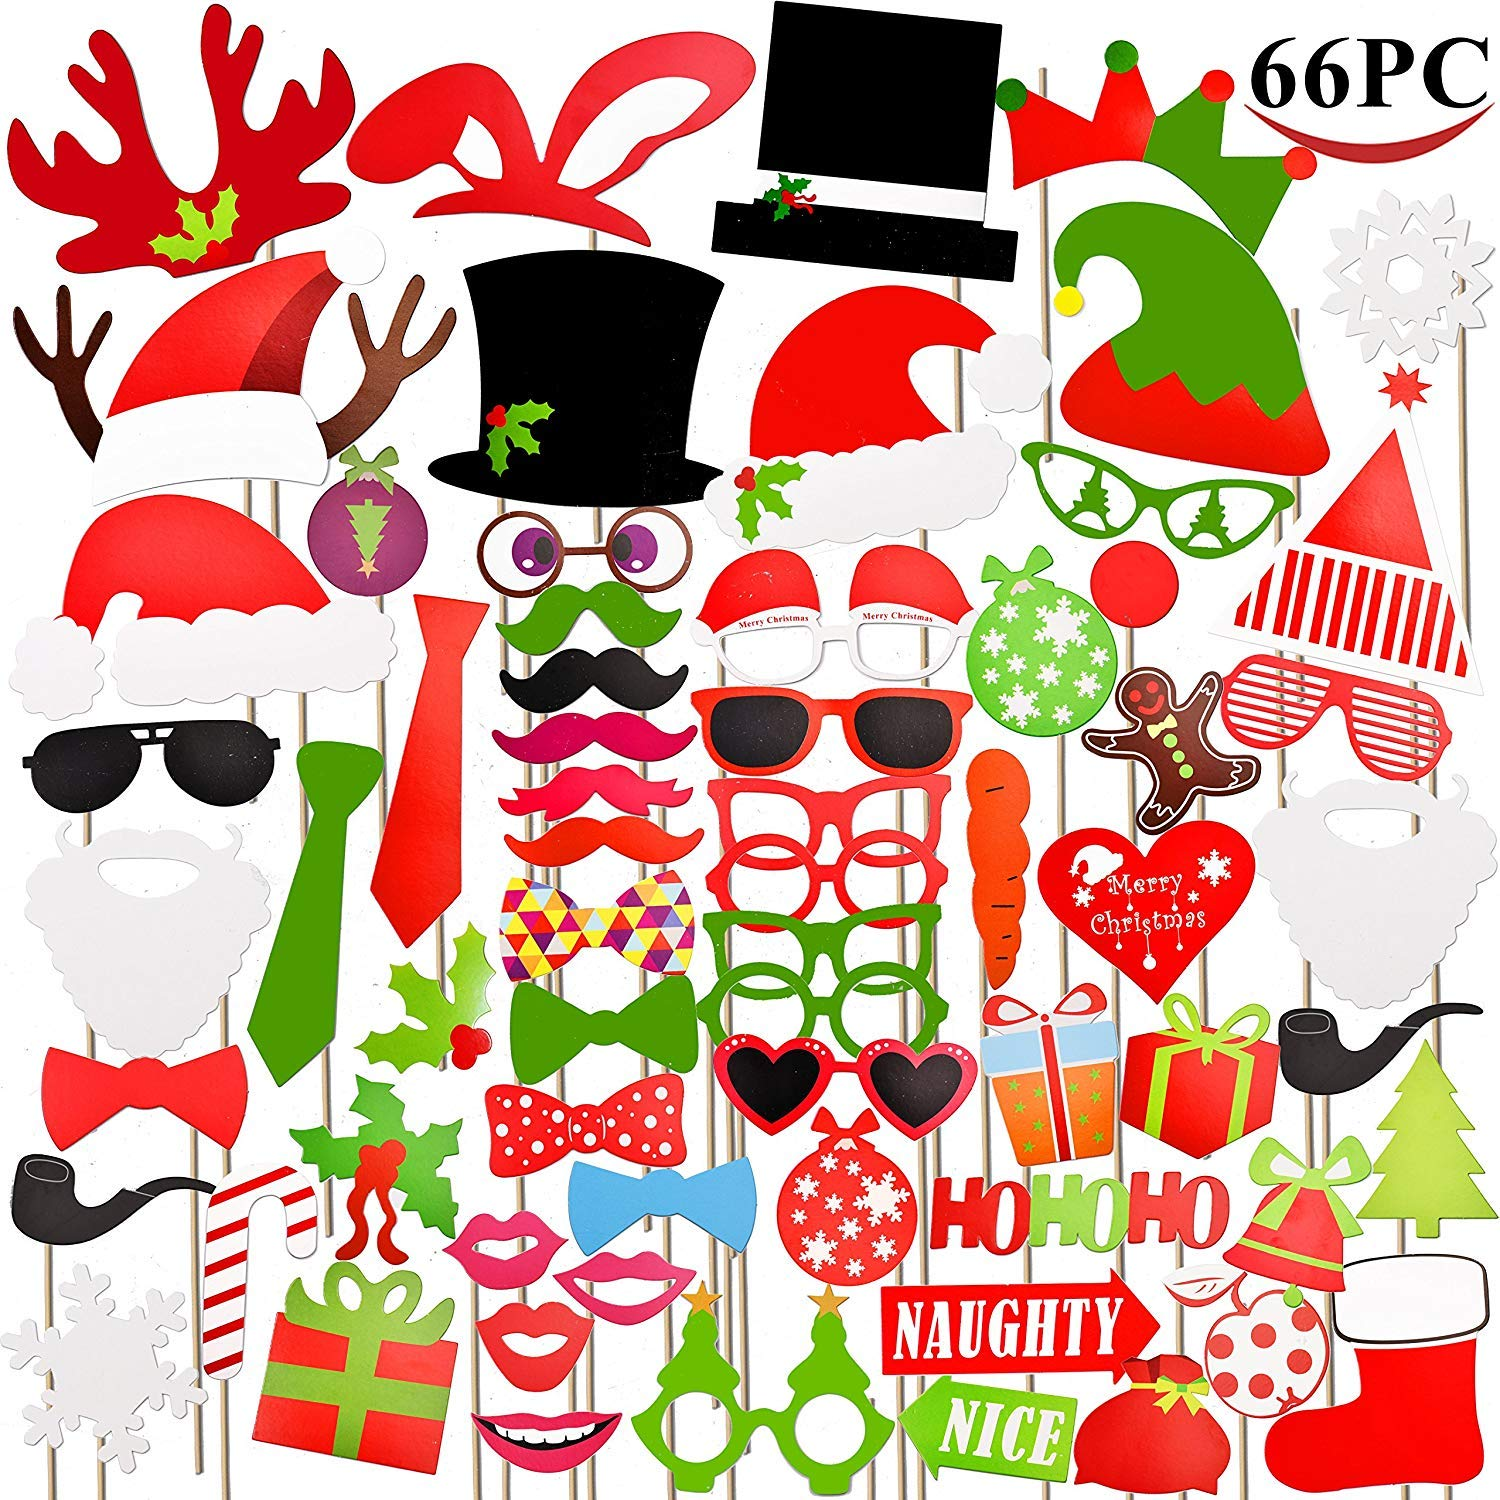 PeeNoke Toy 66 Pieces Christmas Photo Booth Props for Christmas Event Party Favors and Christmas Decorations Art Crafts.